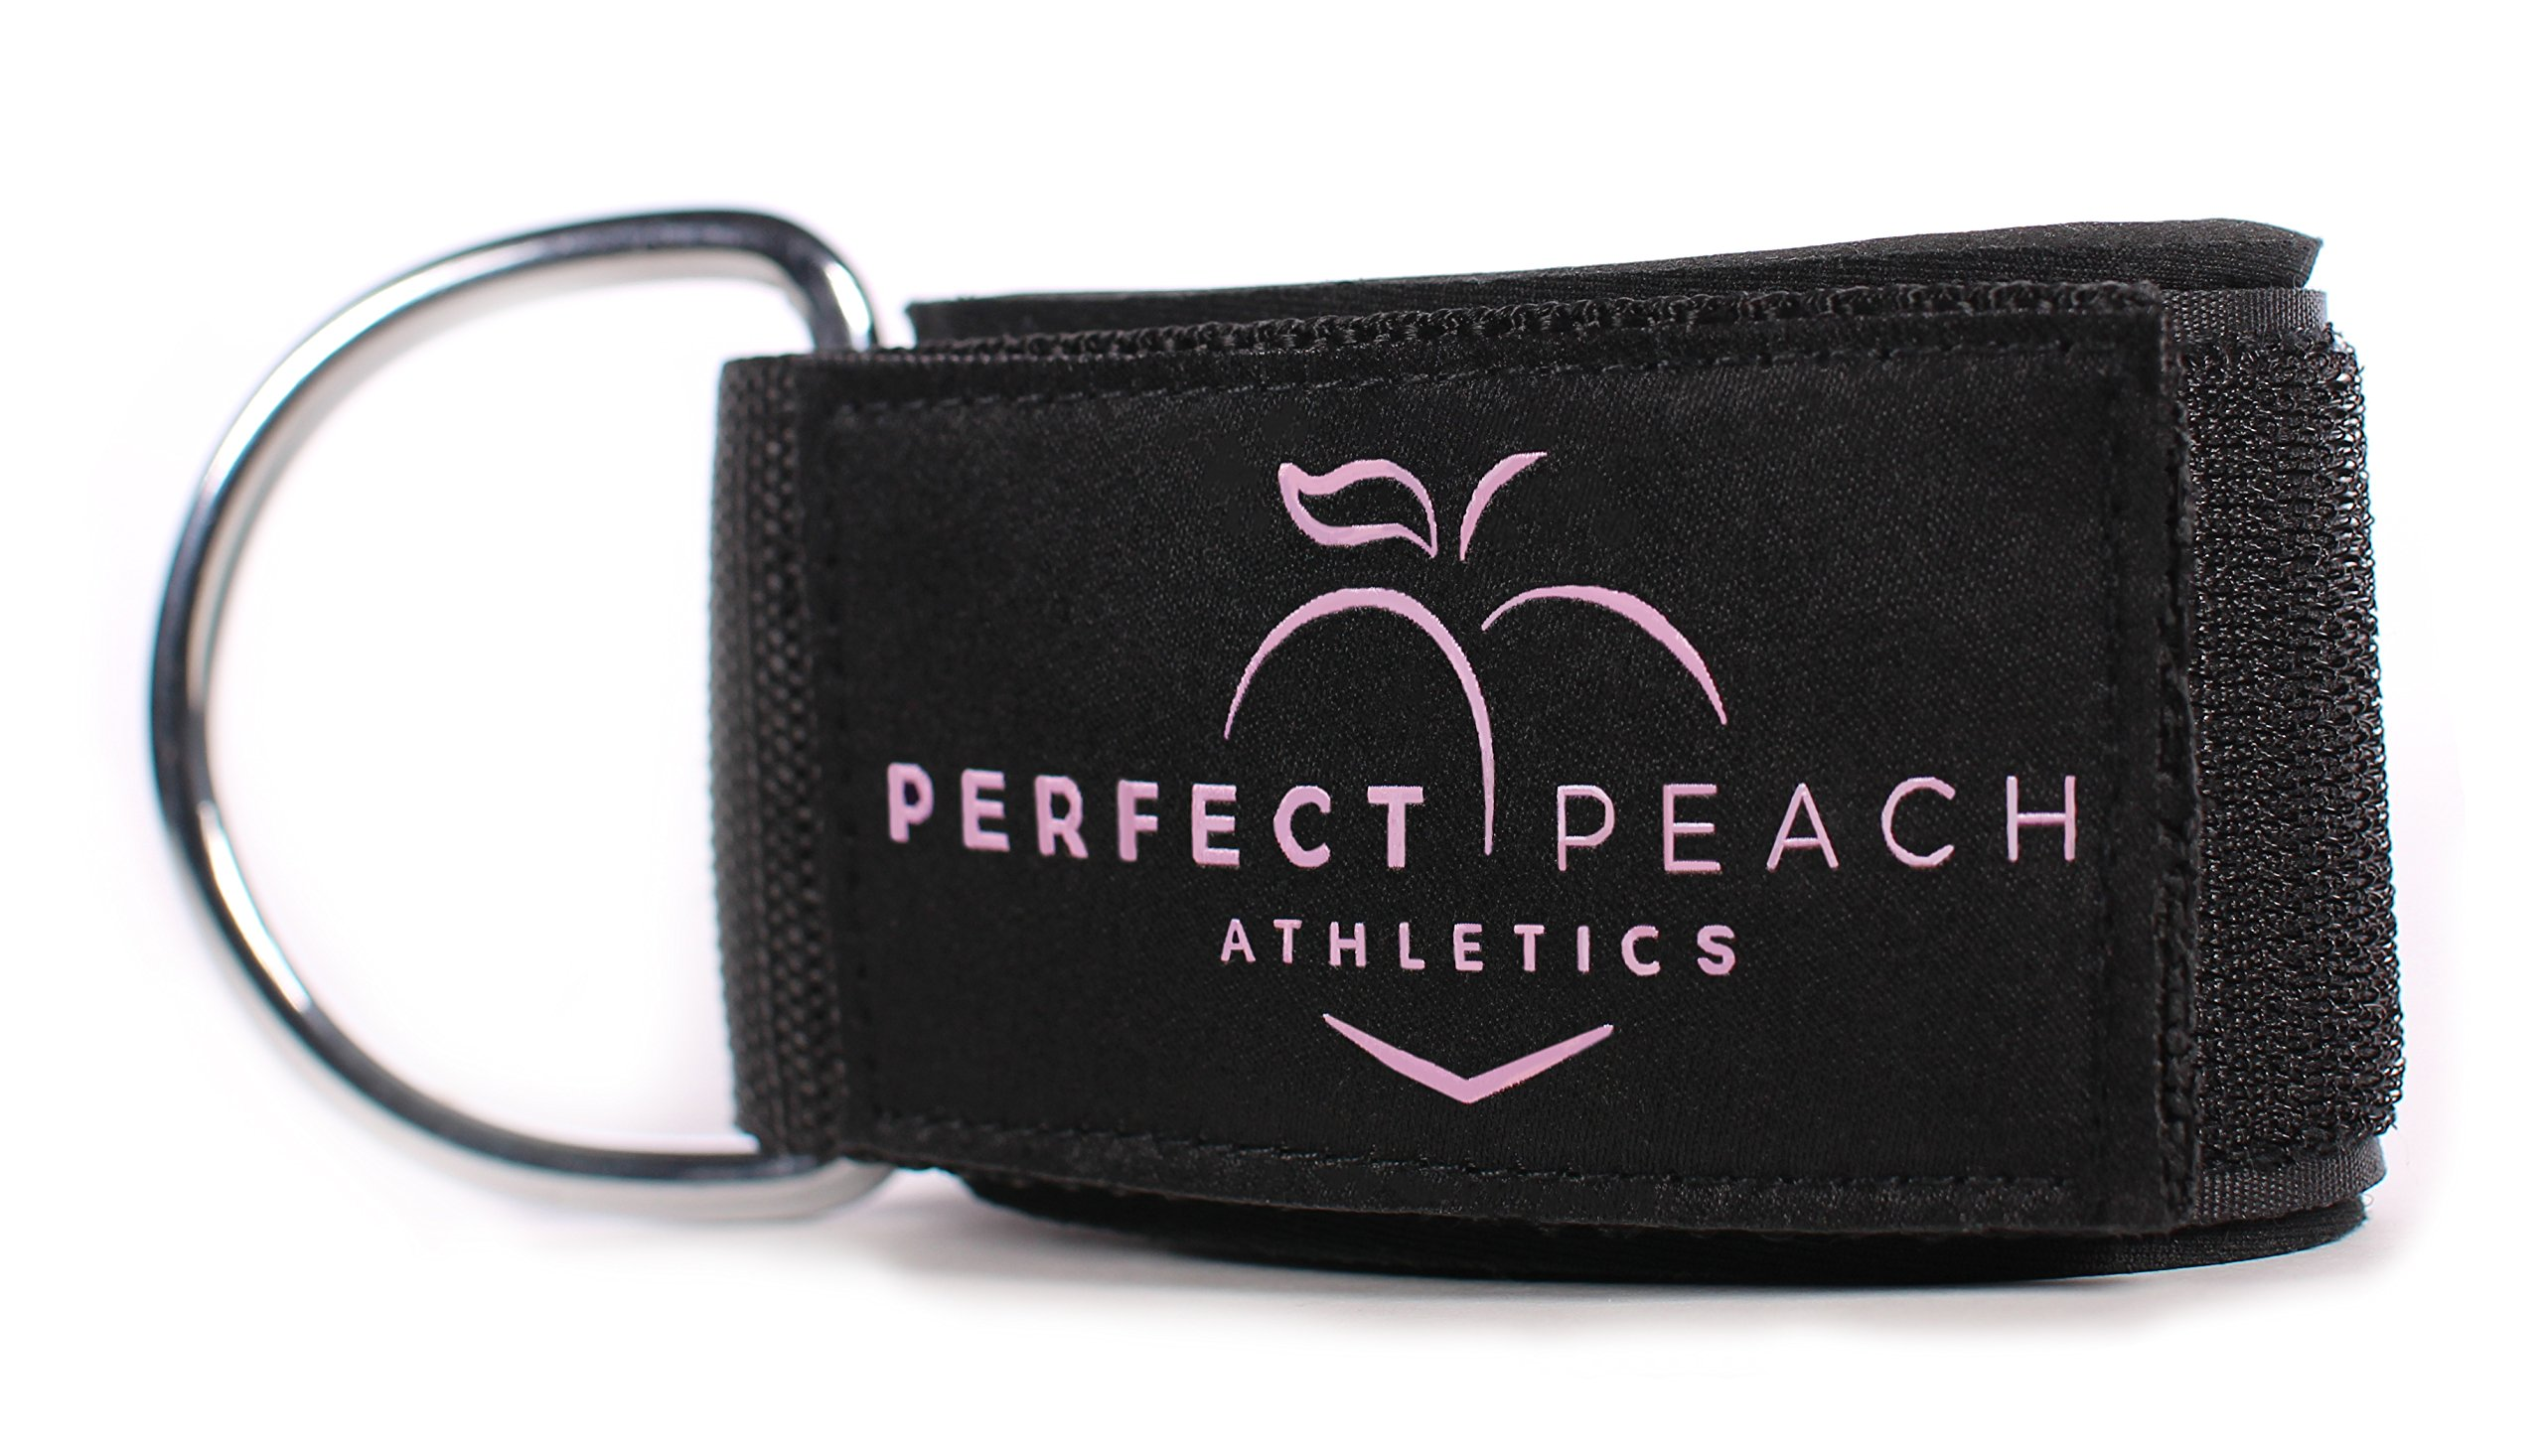 Perfect Peach Athletics Ankle Strap for Cable Machines - Ankle Cuff Gym Accessories for Women - Ankle Strap Cable Attachments for Gym - SINGLE ANKLE STRAP